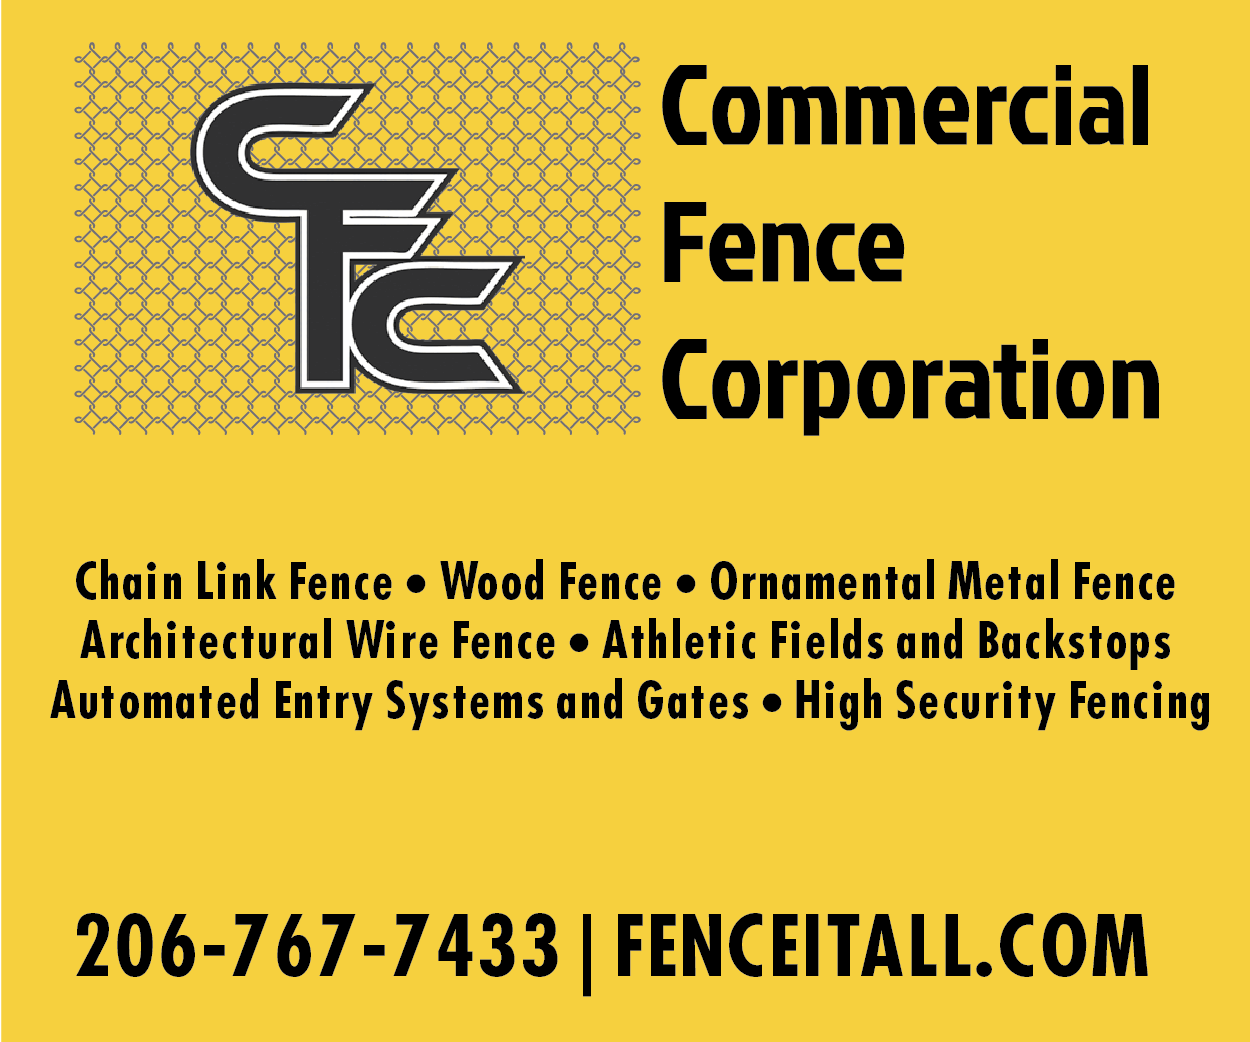 Commercial Fence Corp.